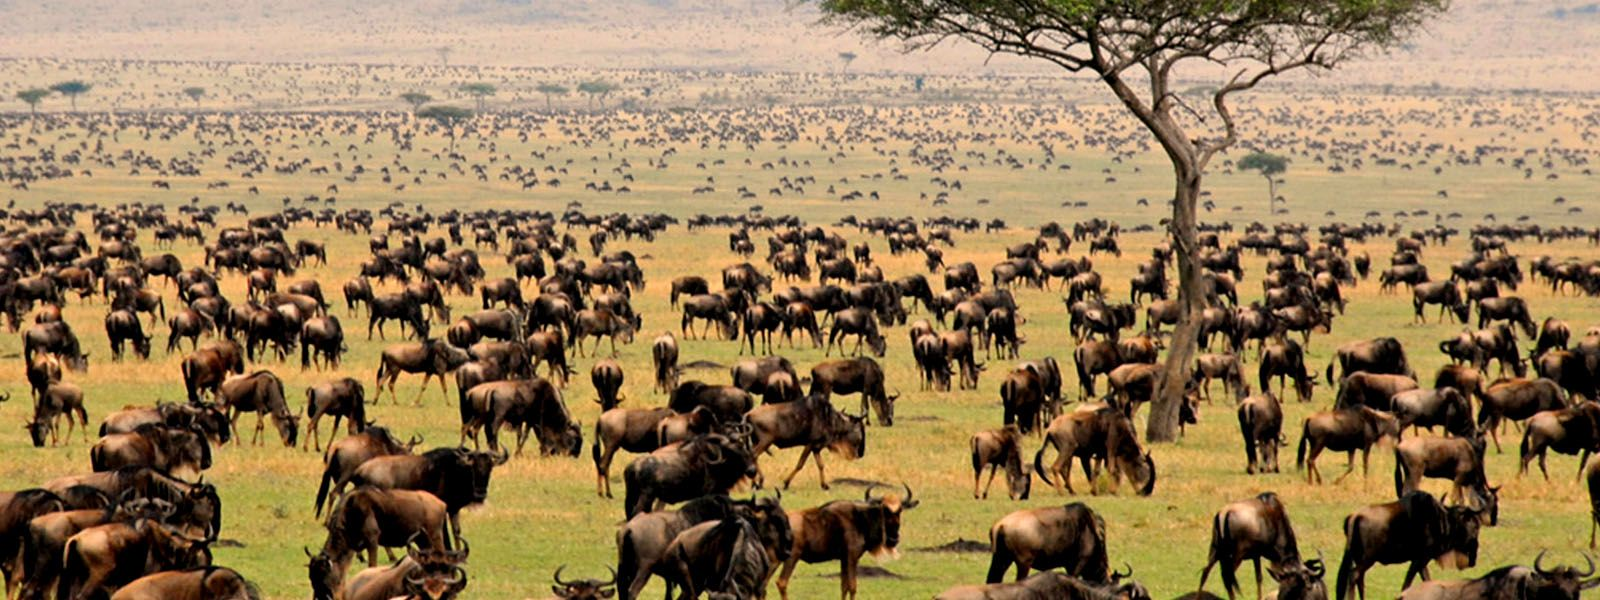 Serengeti Migration Is Hosted In Serengeti Eco System In Tanzania And Kenya The Wildebeest Migration Serves As One Of The Natural Wonders Of The Africa Tours